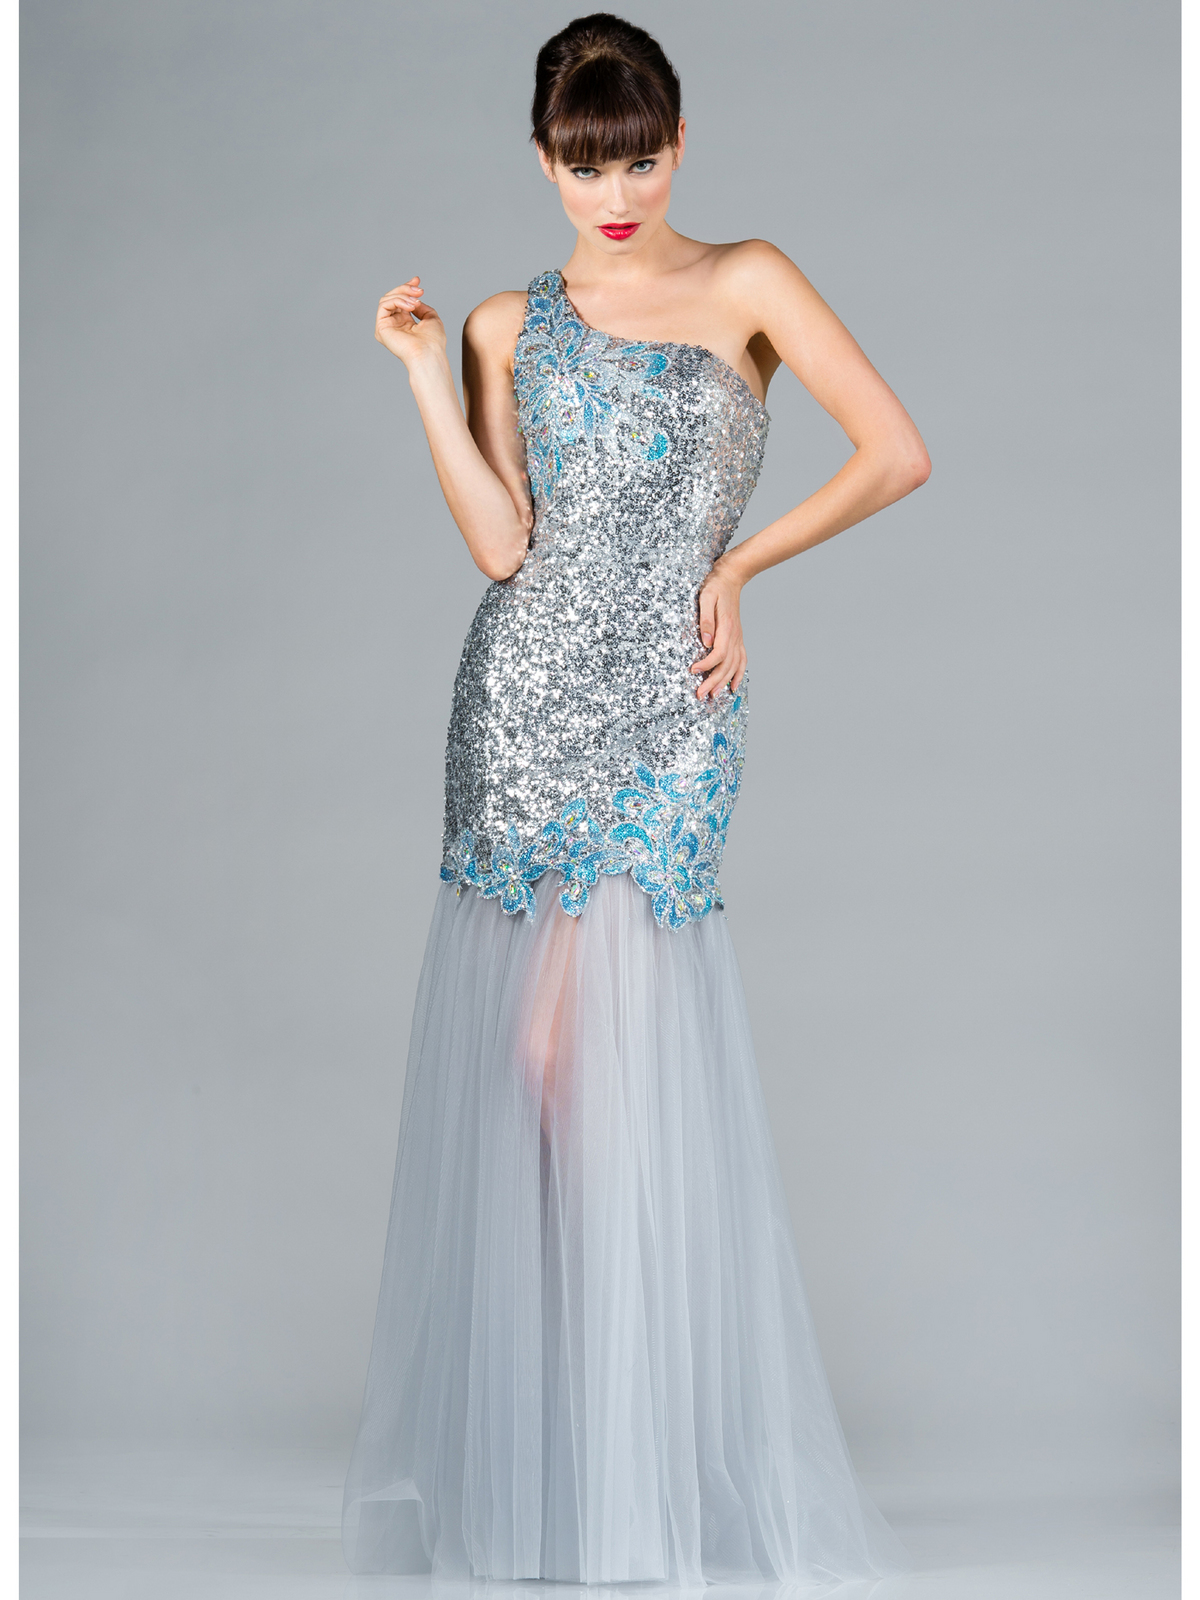 Silver and Blue Sequin Prom Dress